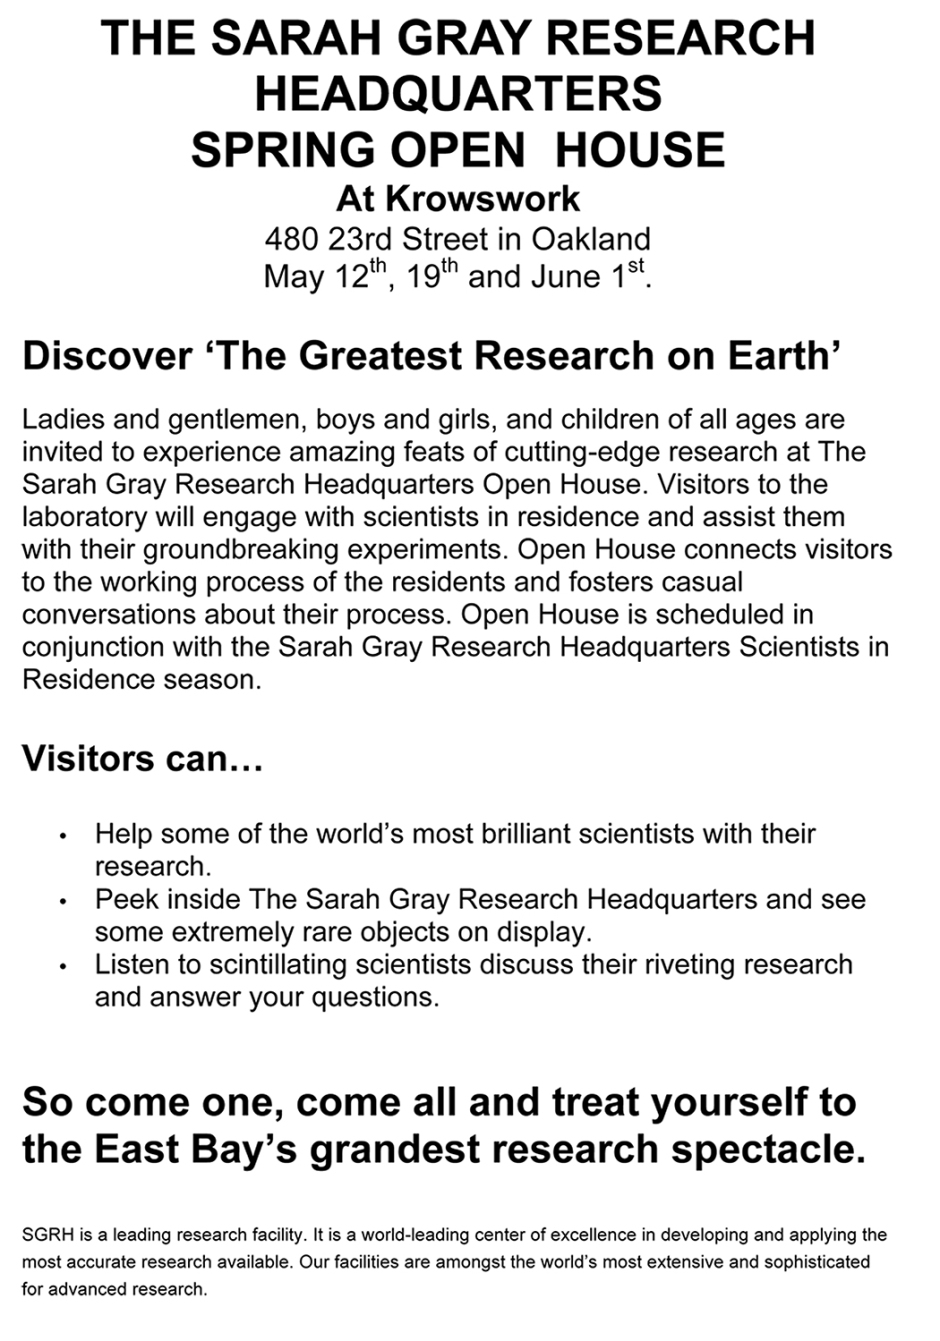 Microsoft Word - THE SARAH GRAY RESEARCH HEADQUARTERS.docx